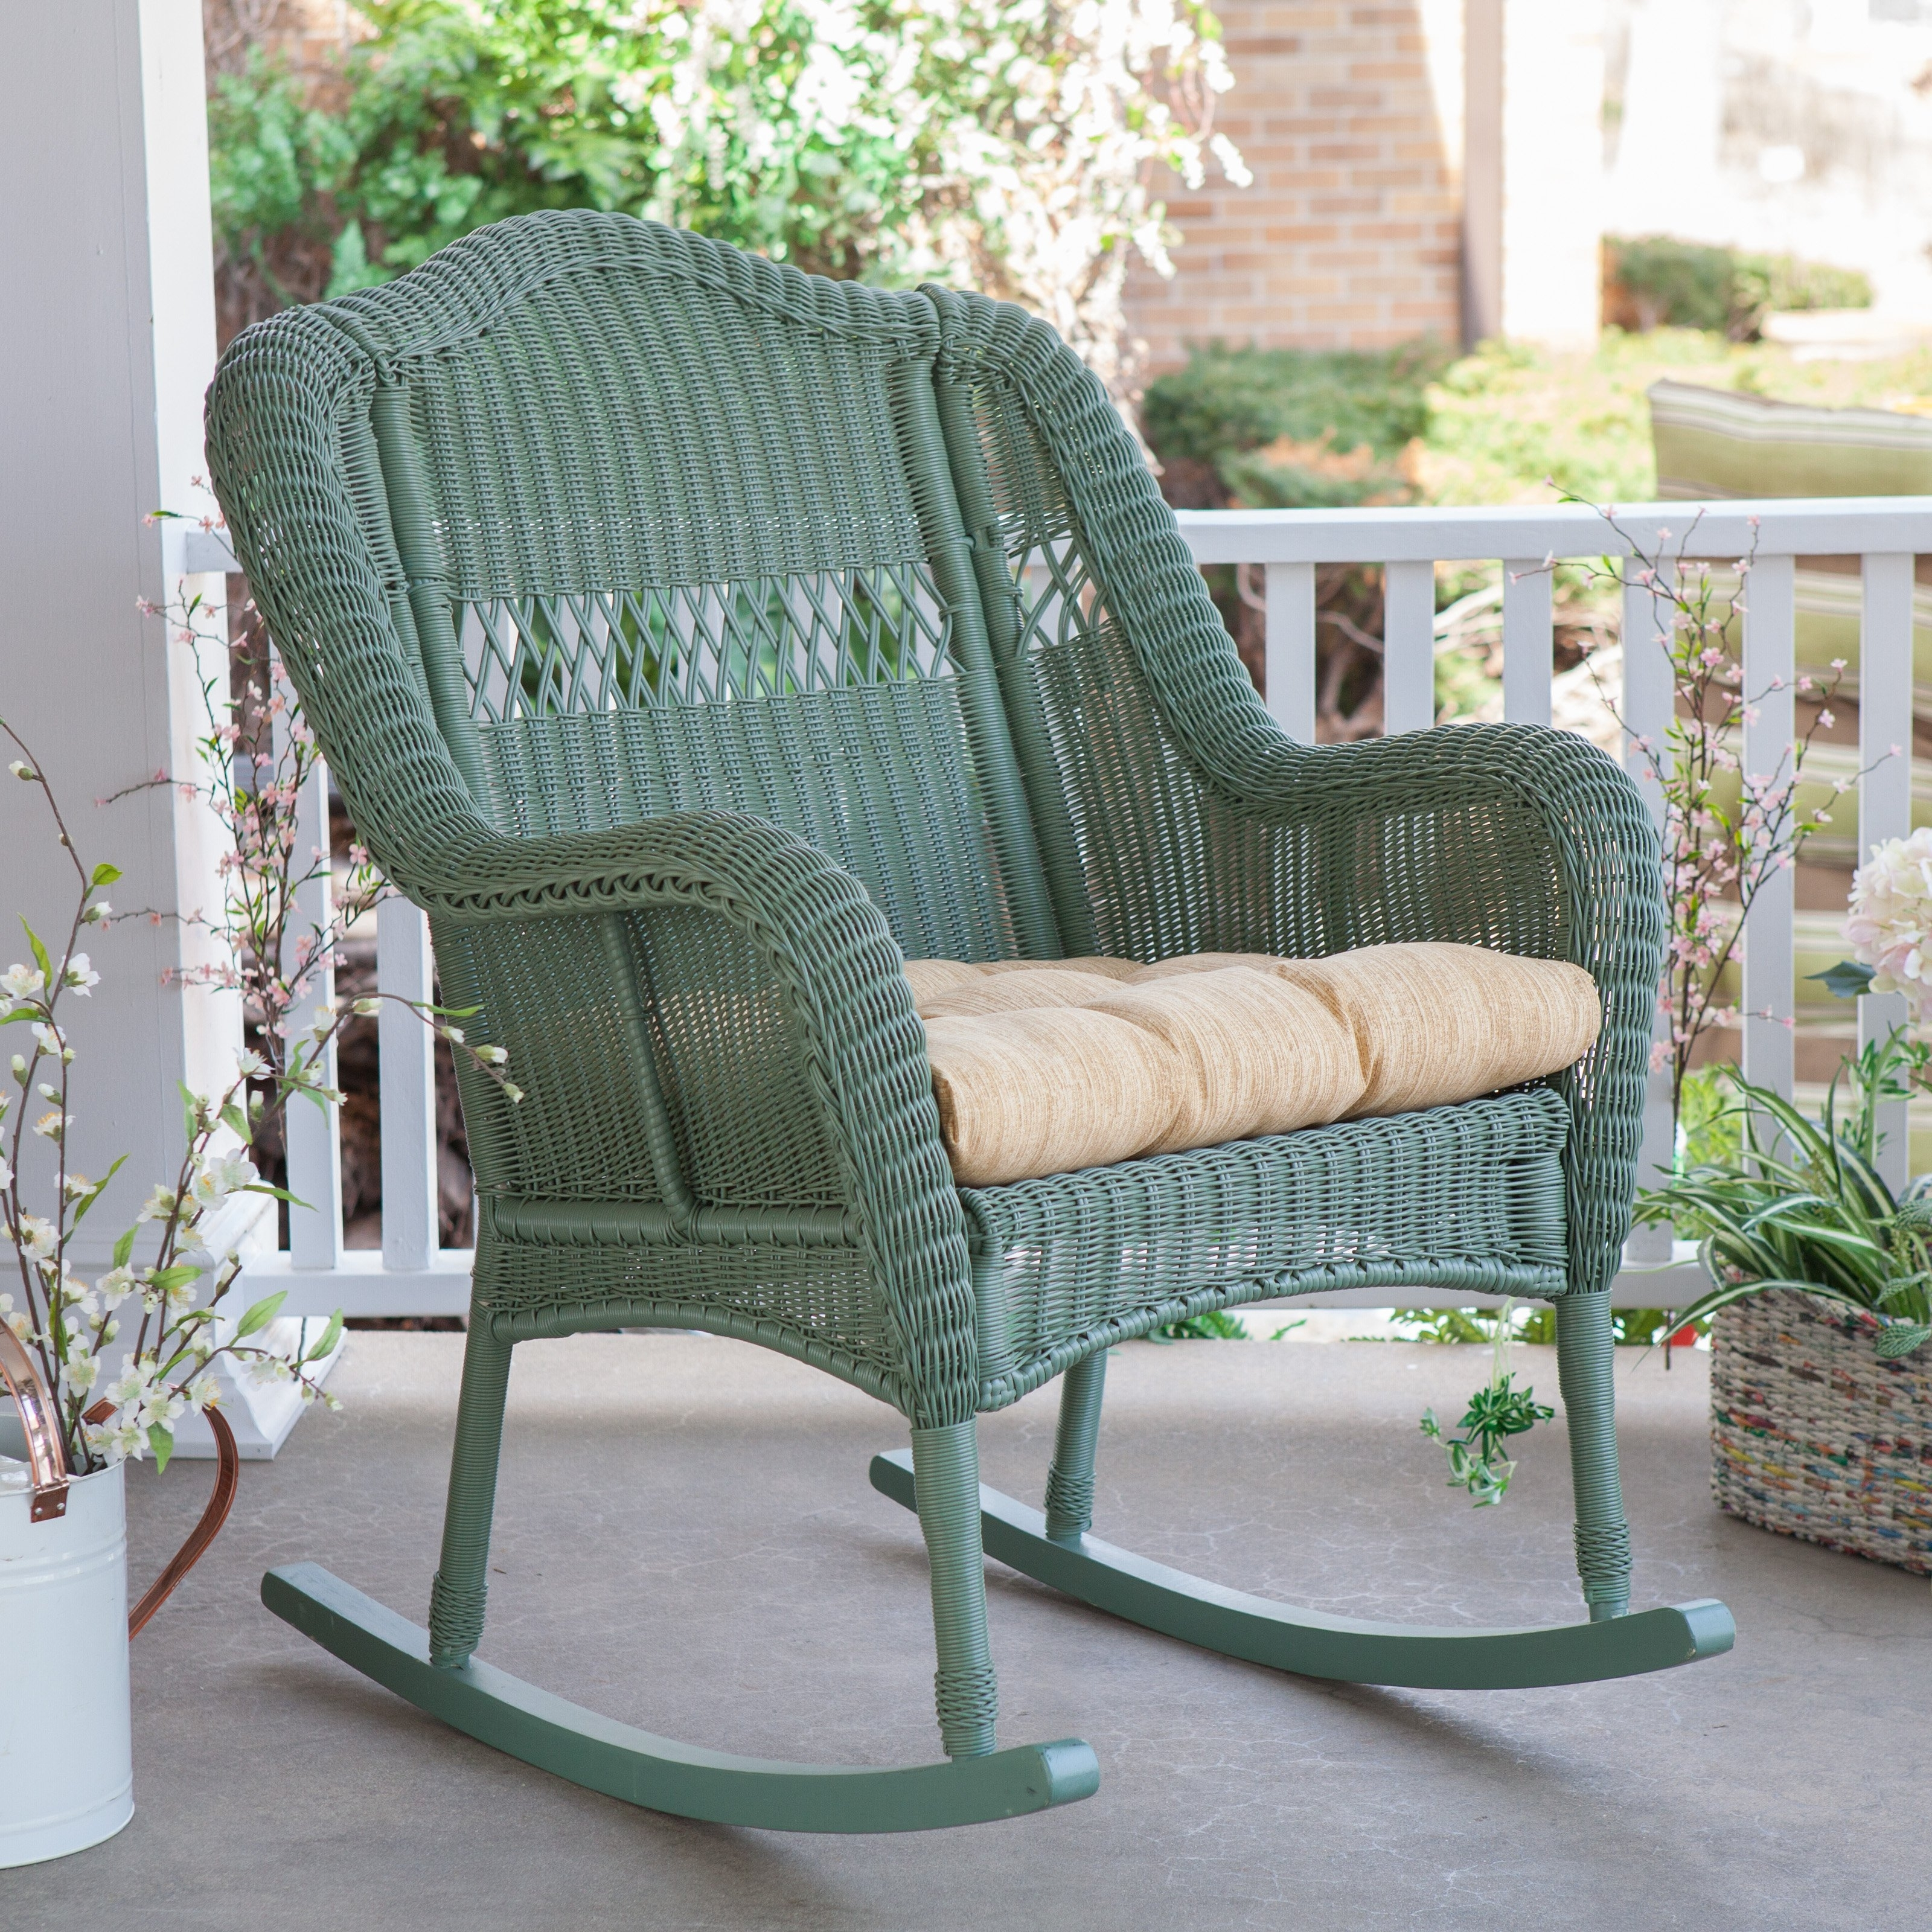 Fashionable Elegant Wicker Rocking Chair Outdoor Wicker Rocking Chair Wicker In Wicker Rocking Chair With Magazine Holder (View 7 of 20)